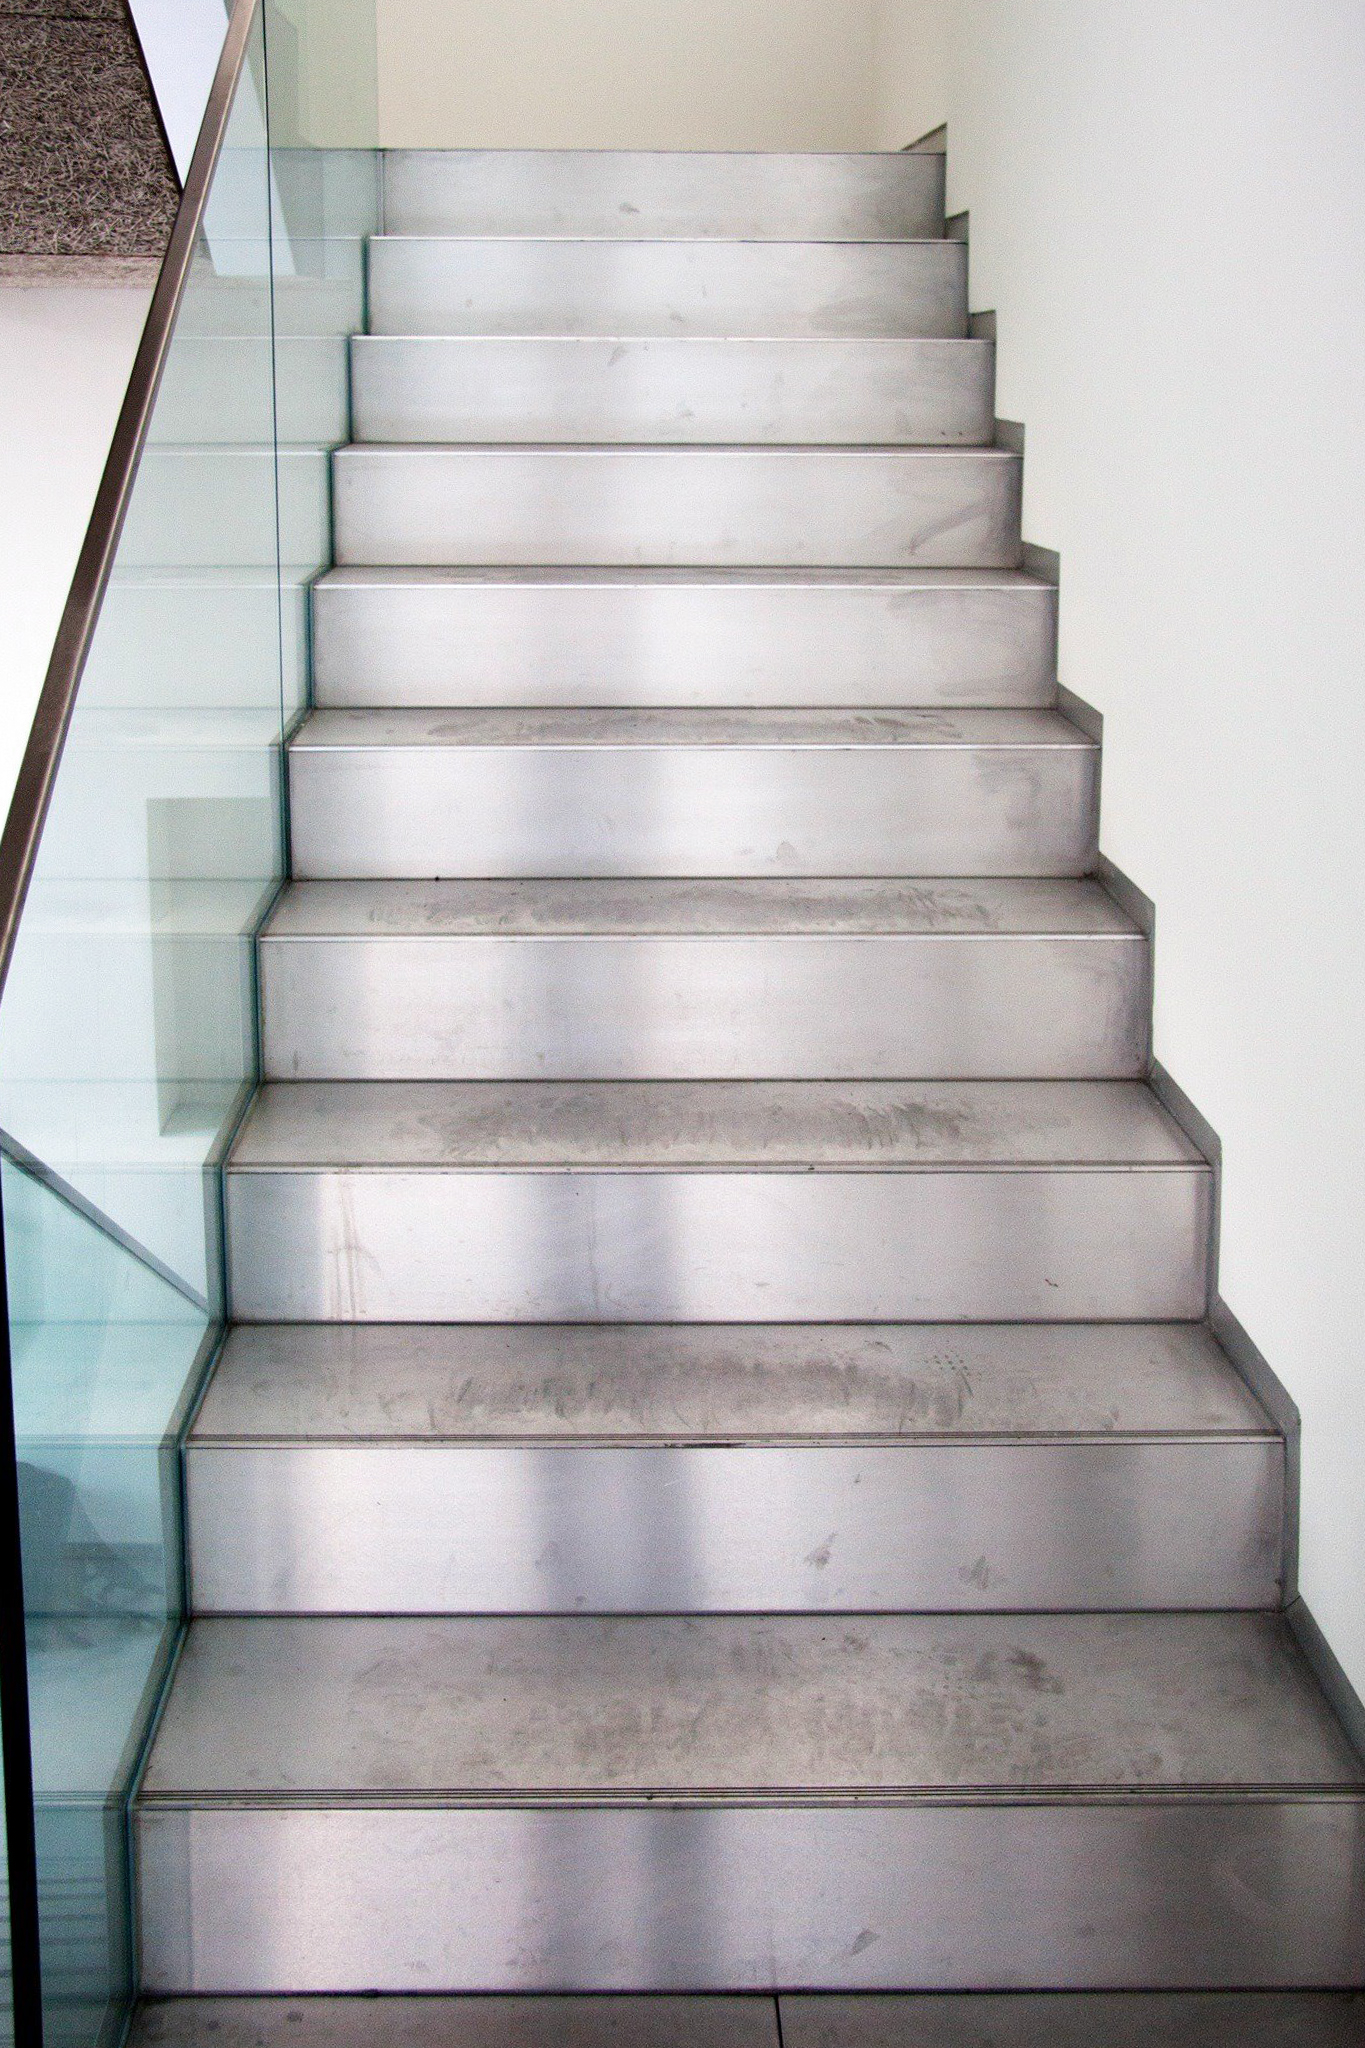 Modern steel staircase with glass railing